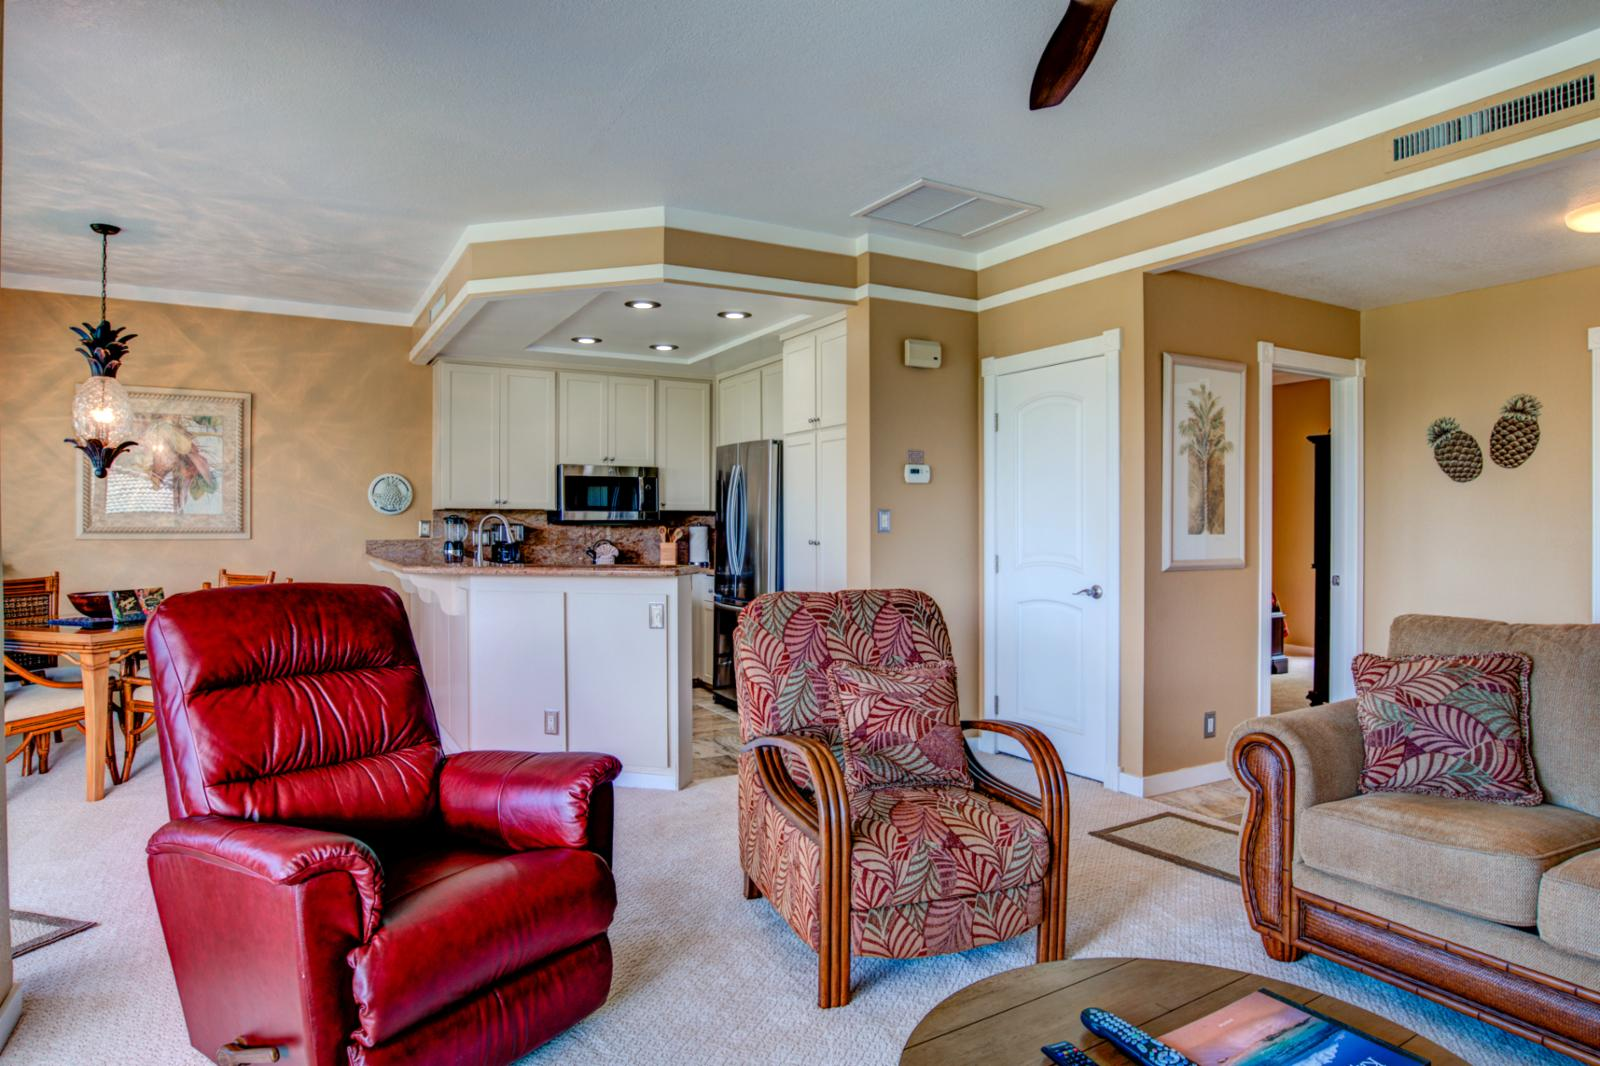 Comfortable seating with large layout